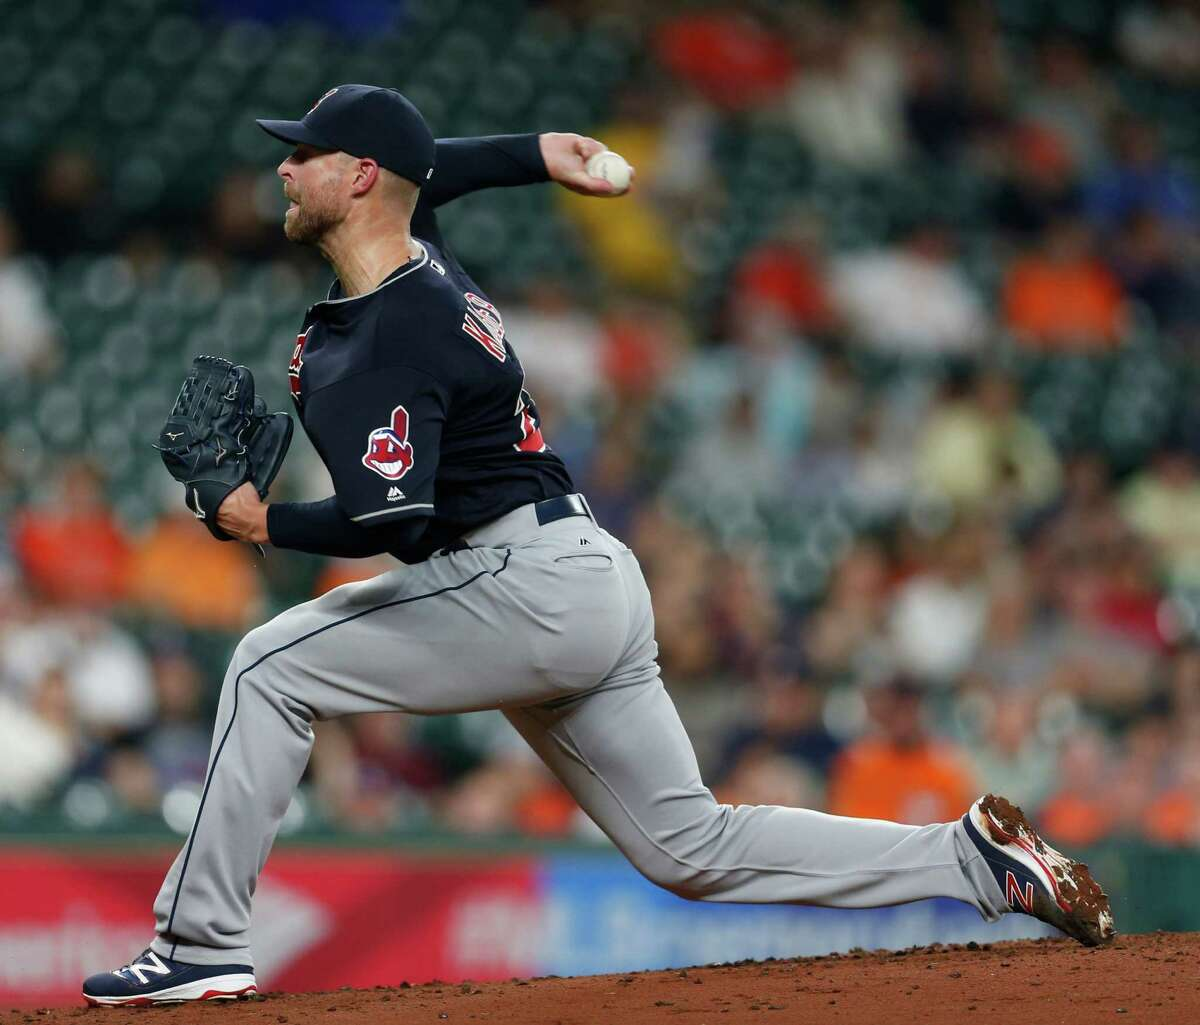 Corey Kluber, Indians He went 18-9 with a 2.44 ERA and 269 strikeouts in 235.2 innings in 2014, and Sports Illustrated picked Cleveland to win the 2015 World Series. Kluber then imploded in 2015, going 9-16 with a 3.49 ERA.